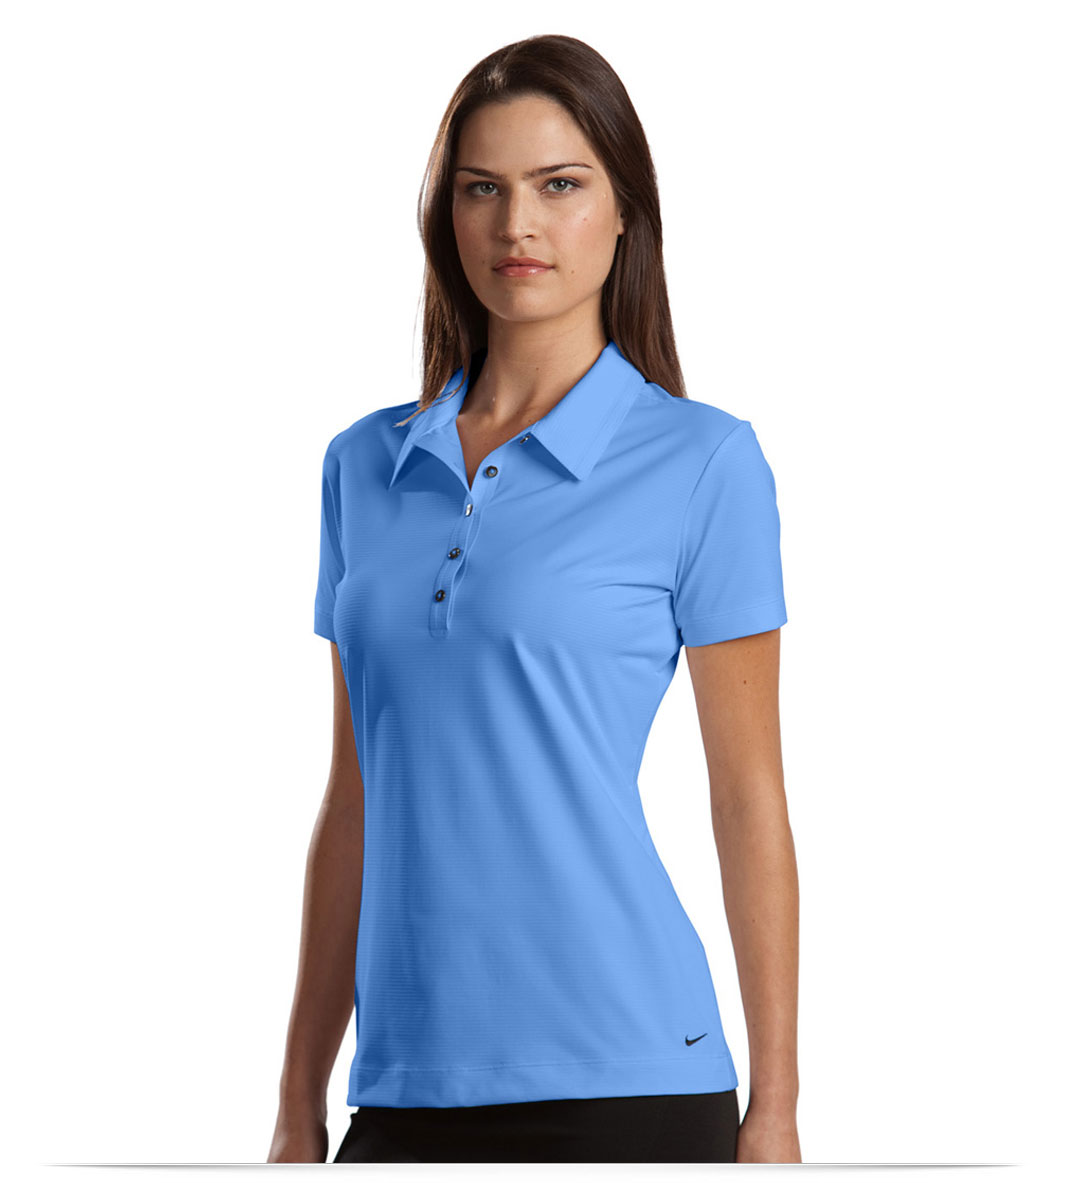 Embroidered Women's Nike Golf Shirt